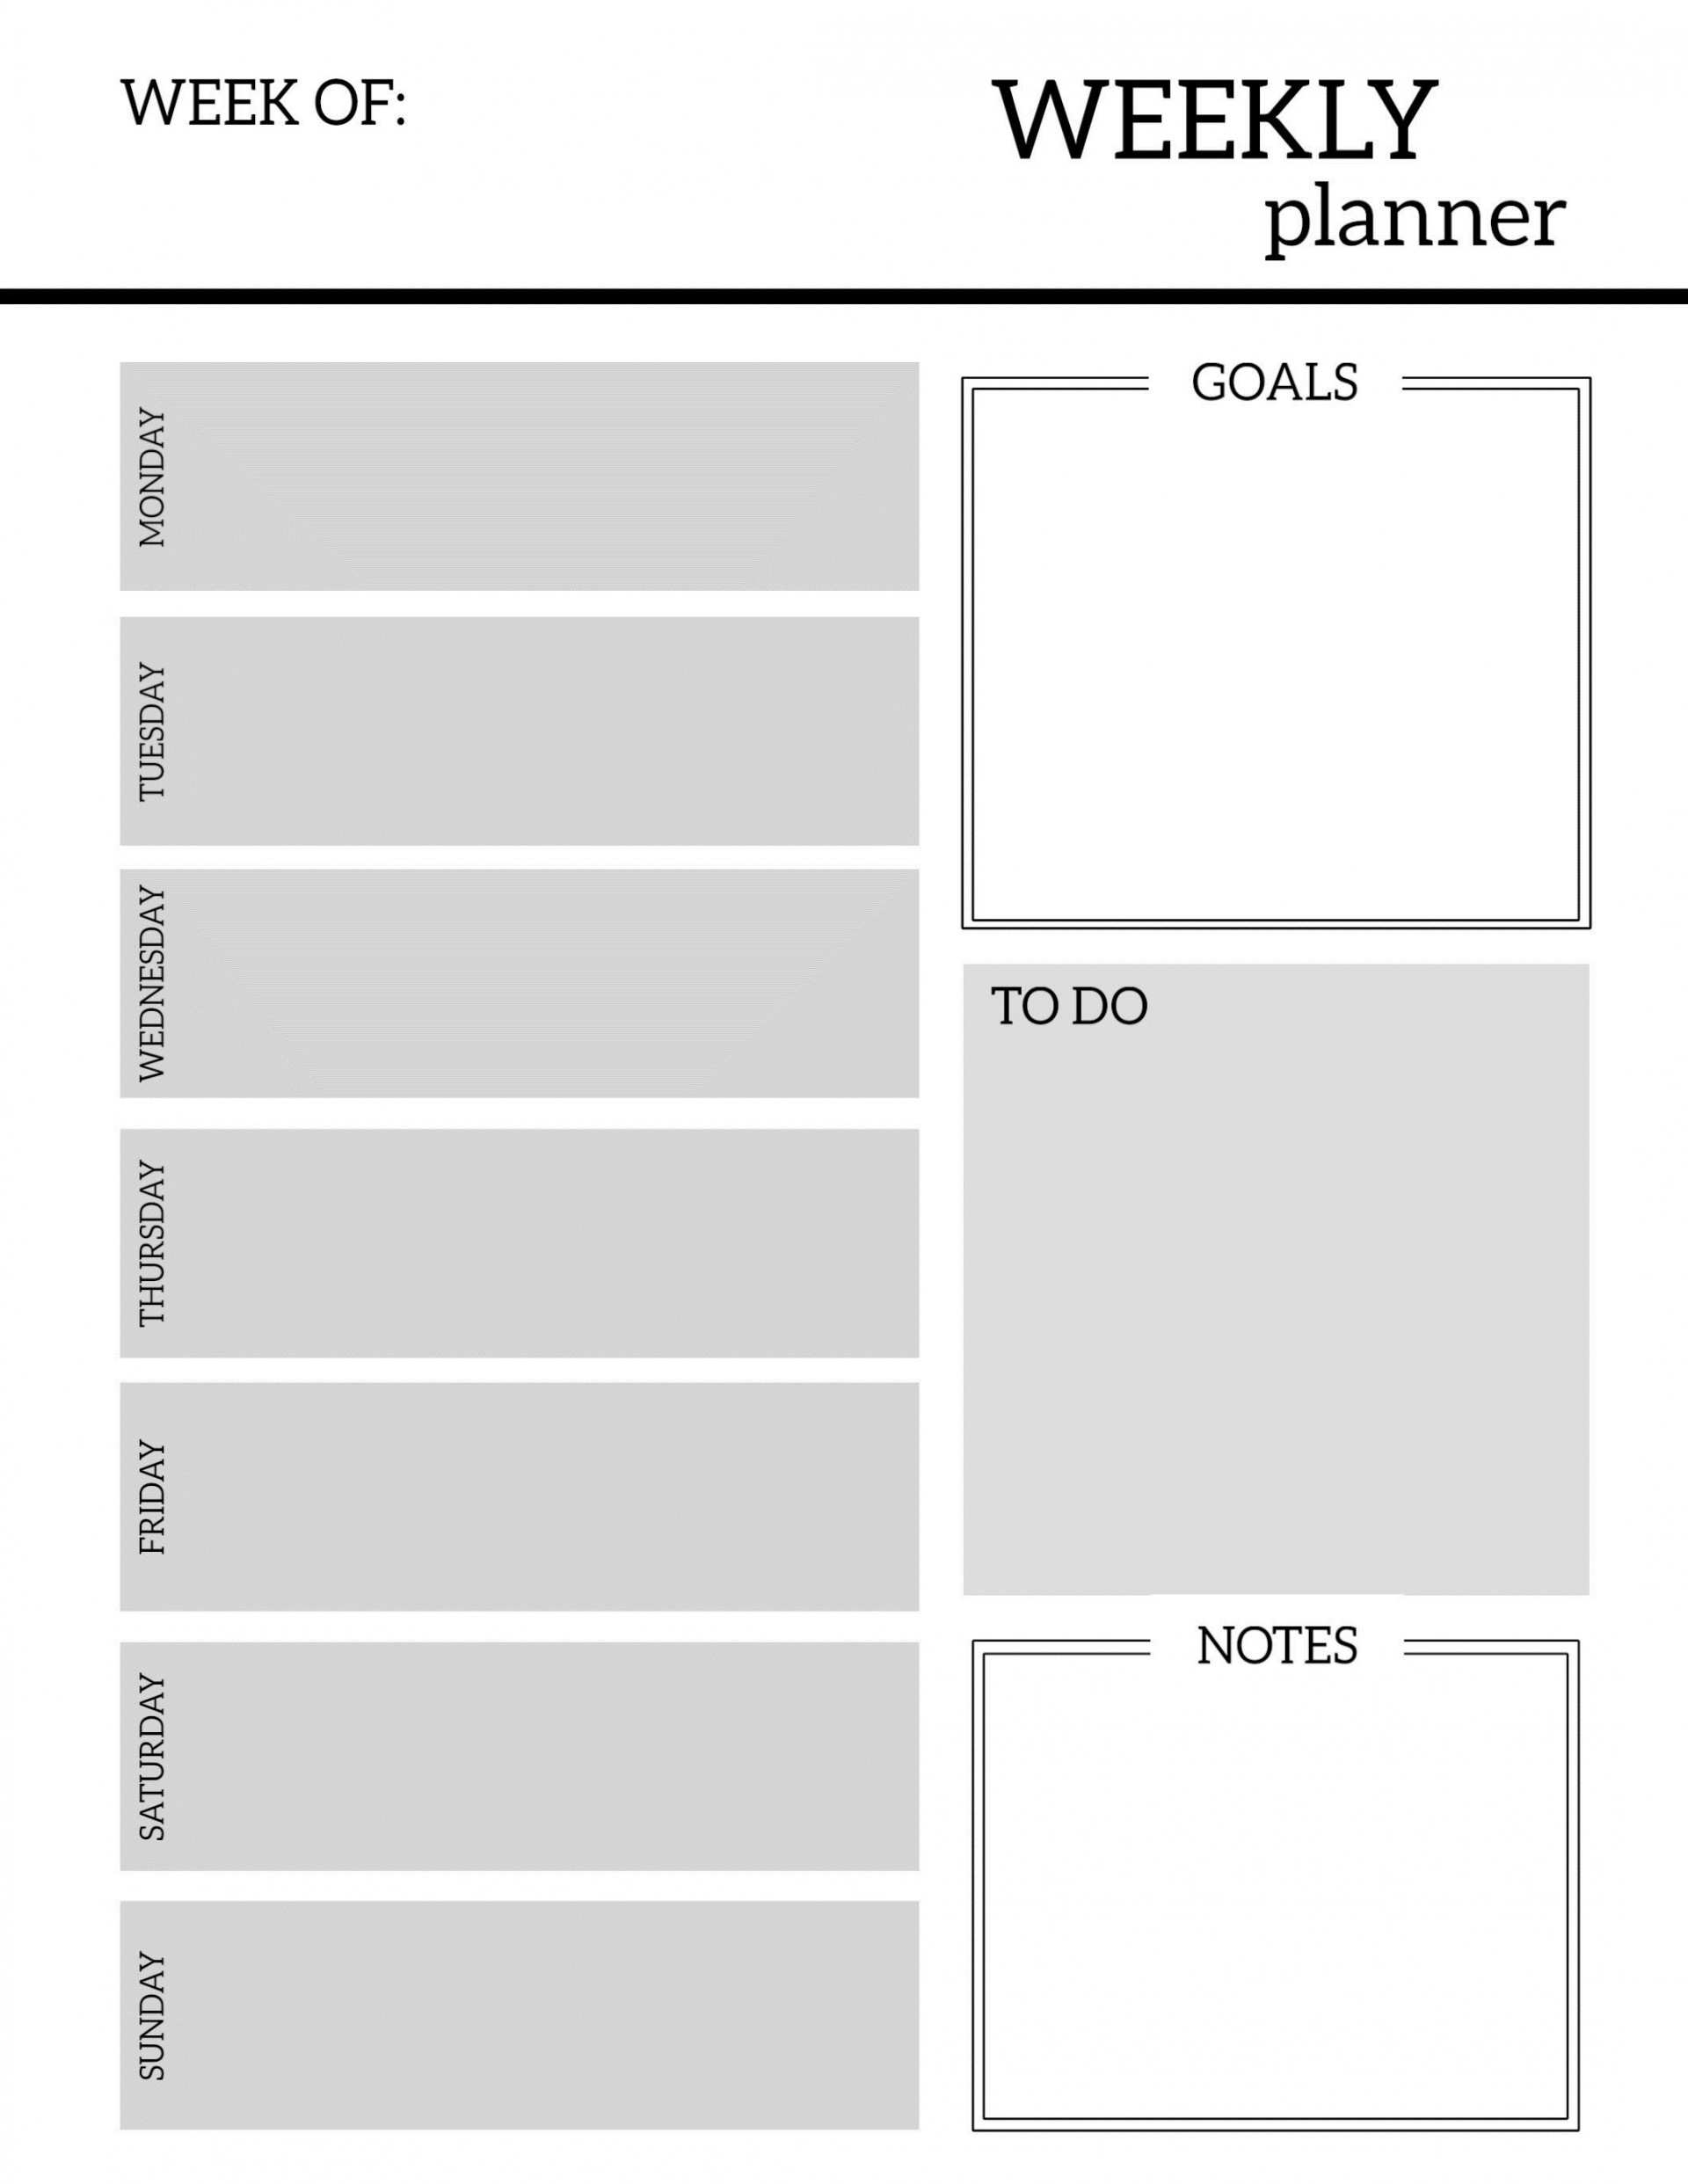 009 Breathtaking Excel Weekly Planner Template 2019 Picture  Holiday1920